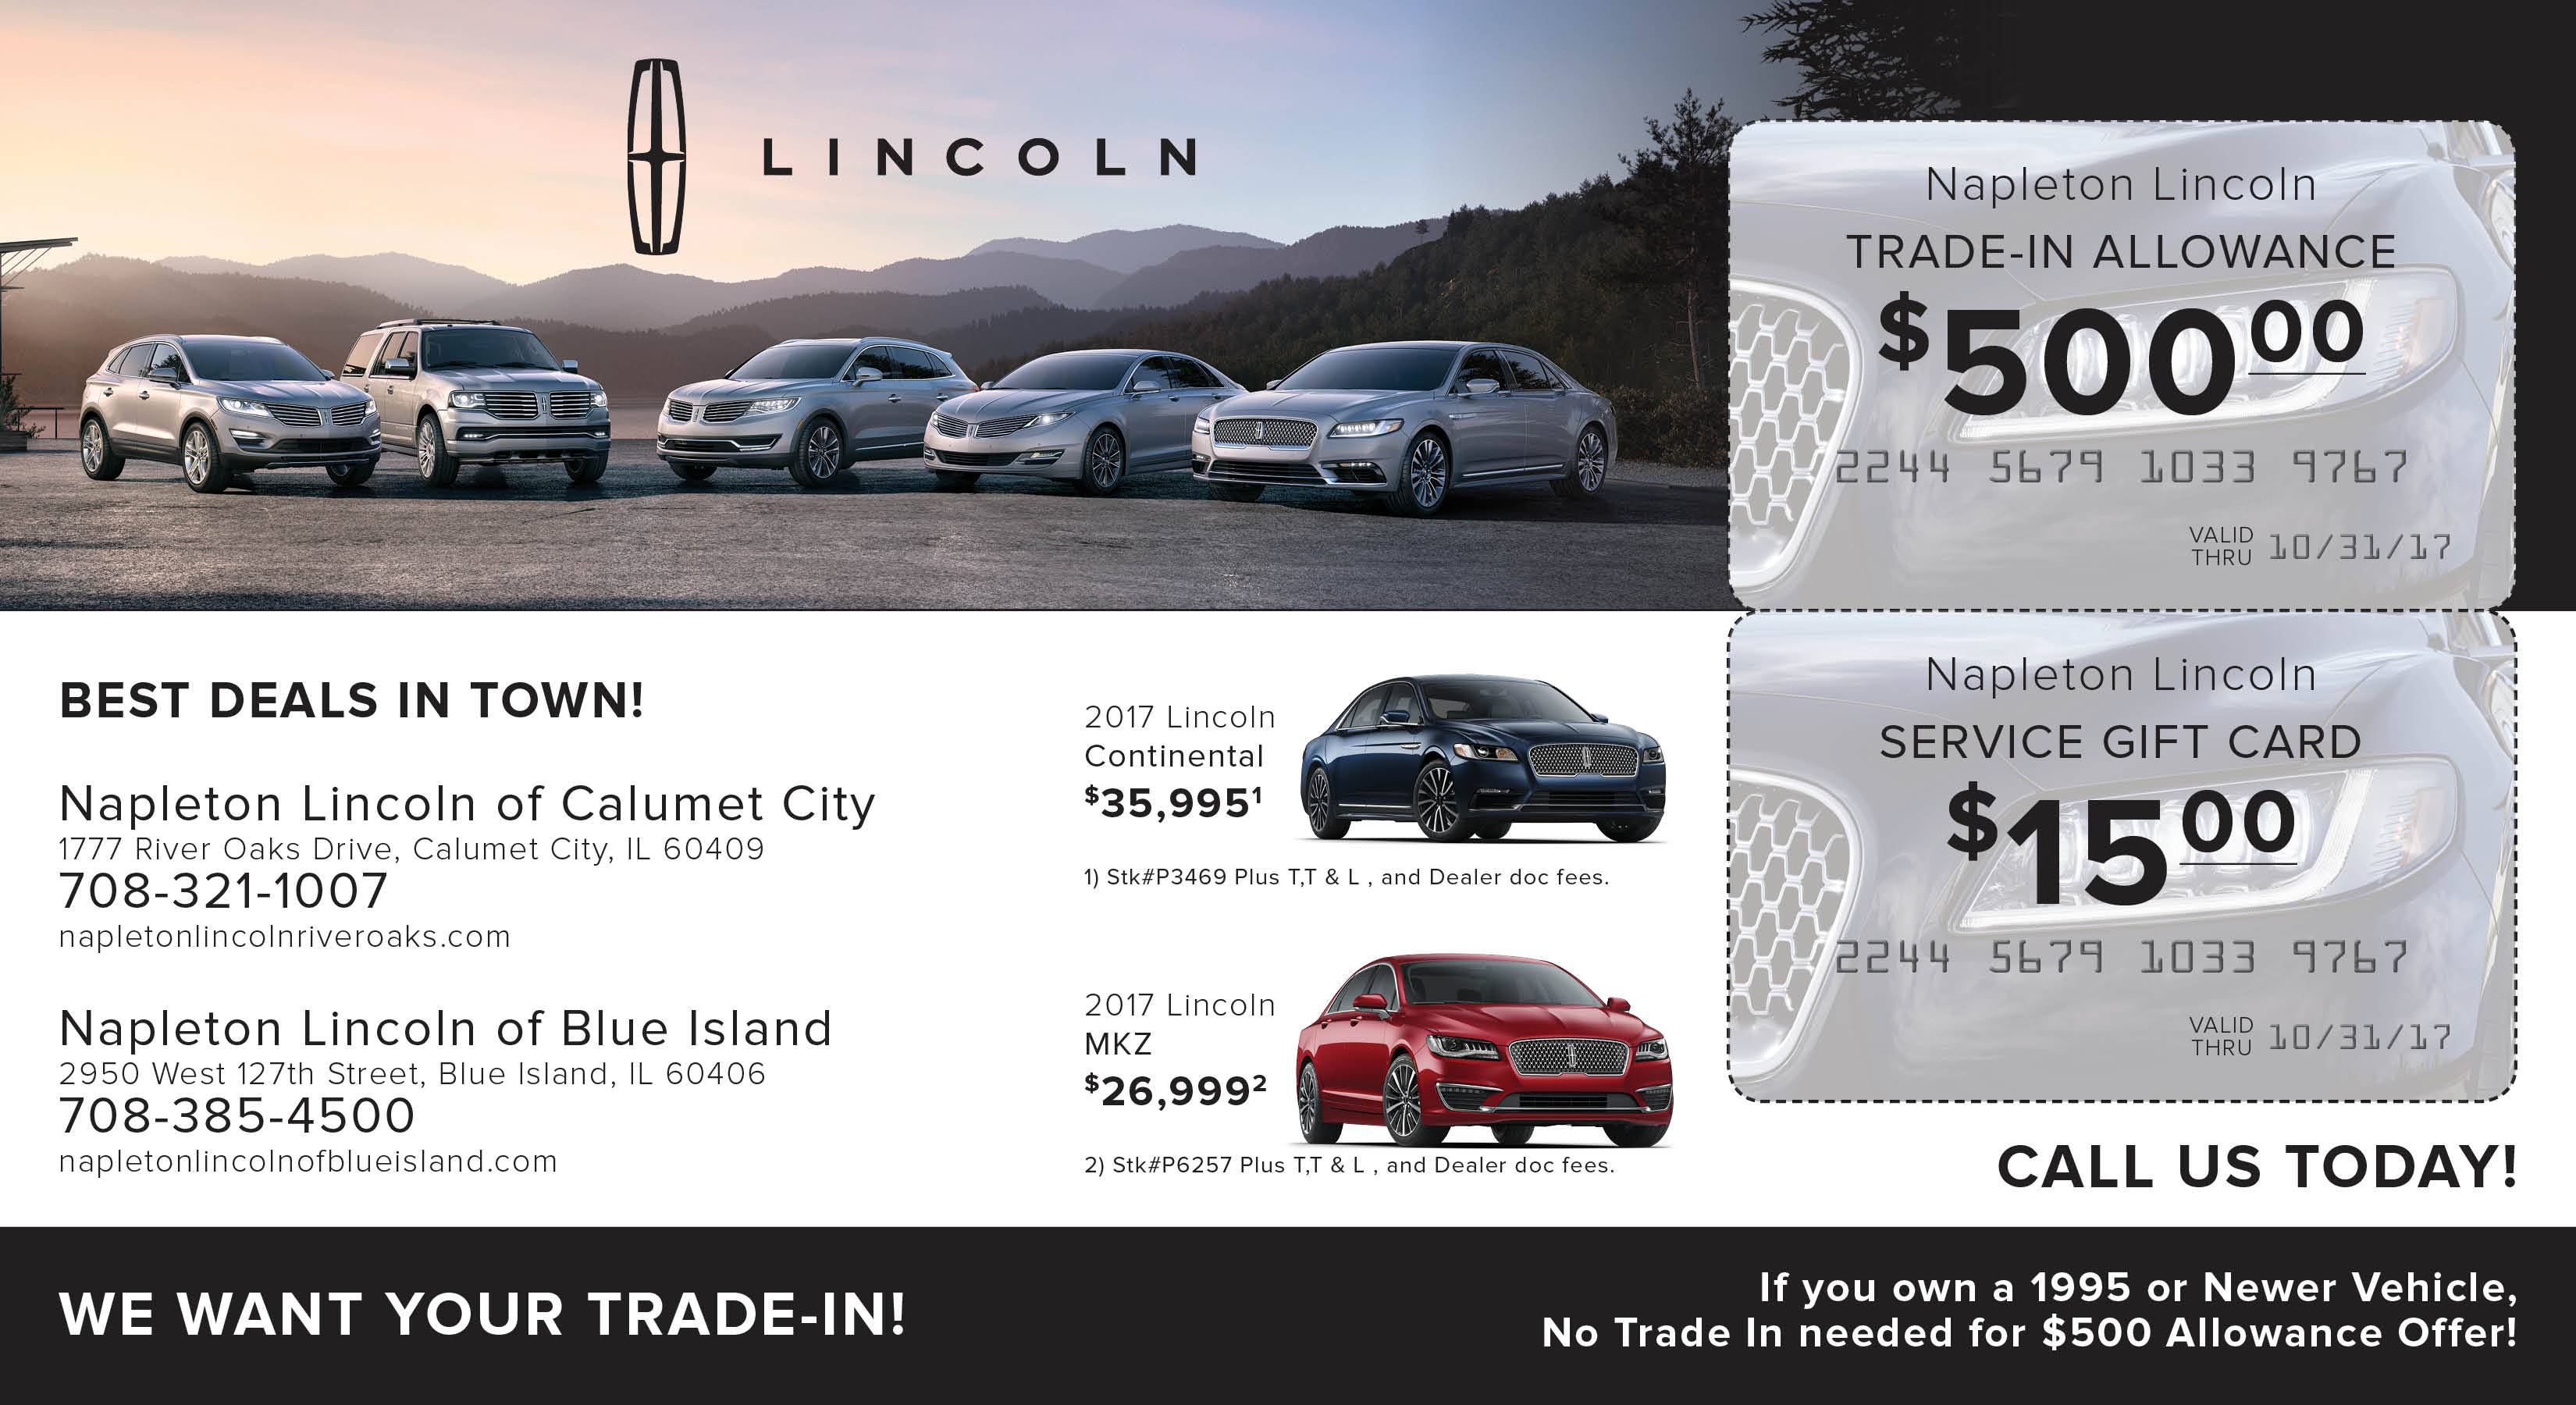 ads more chris vintage pin cars lincoln pinterest dealership on by mercury sexy car g explore and